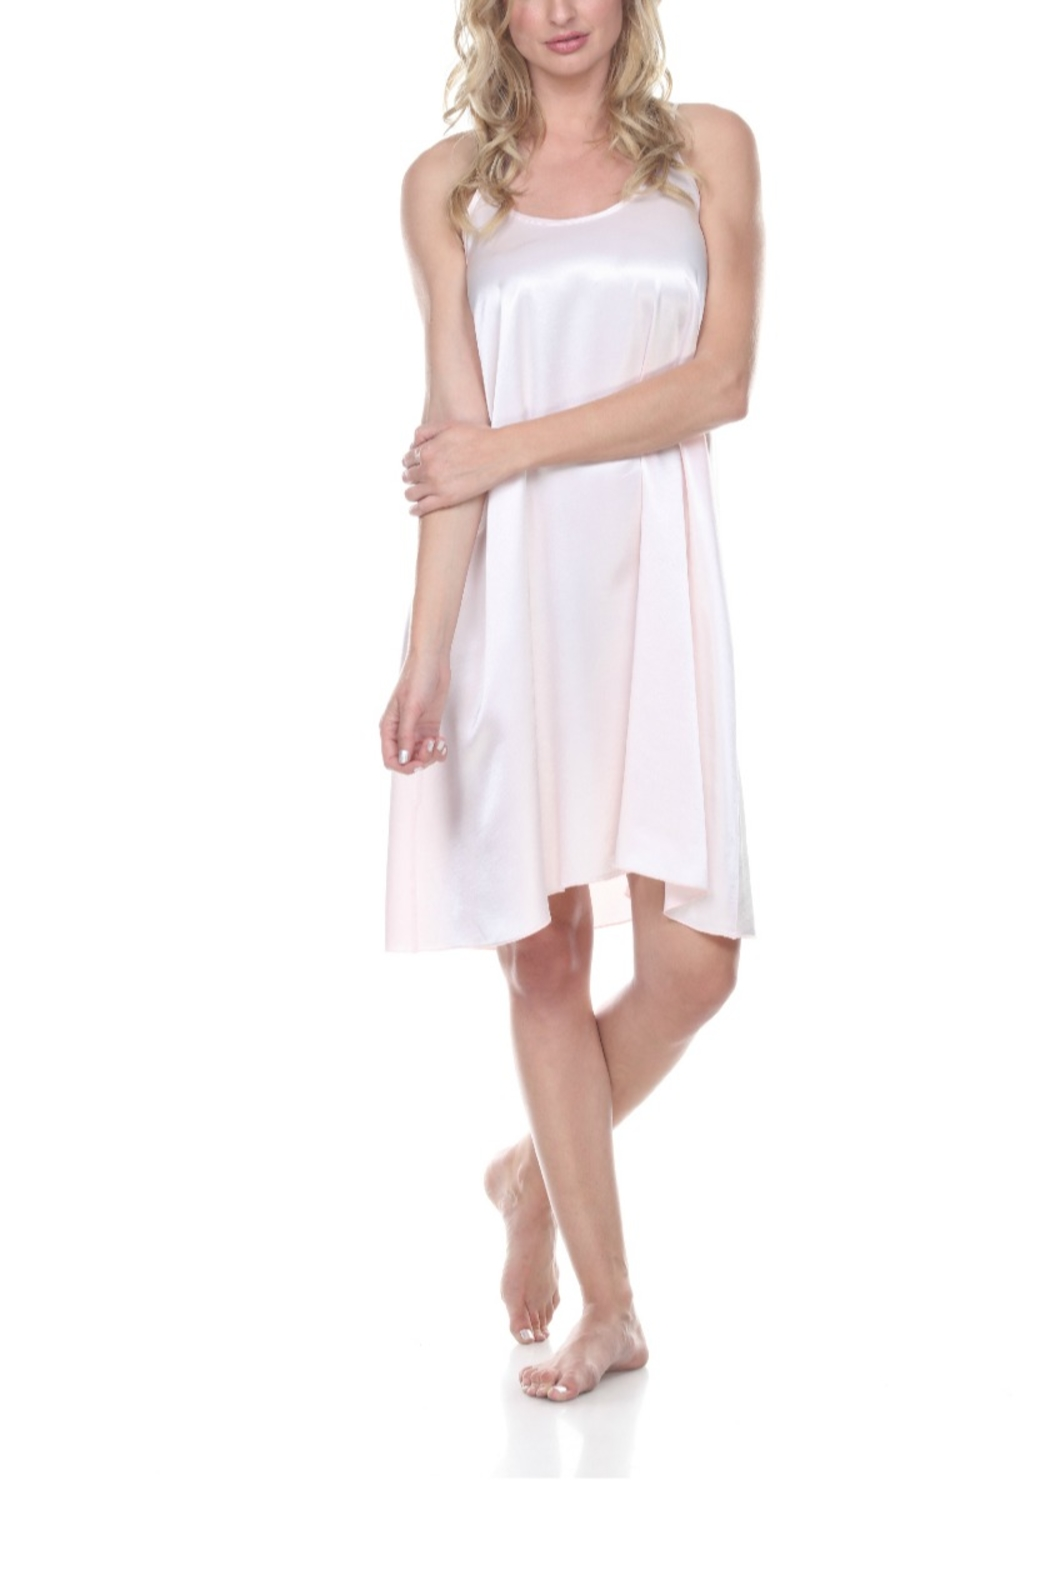 PJHARLOW RUBY Satin Nightgown With Spaghetti Strap And Gathered Back - Main Image